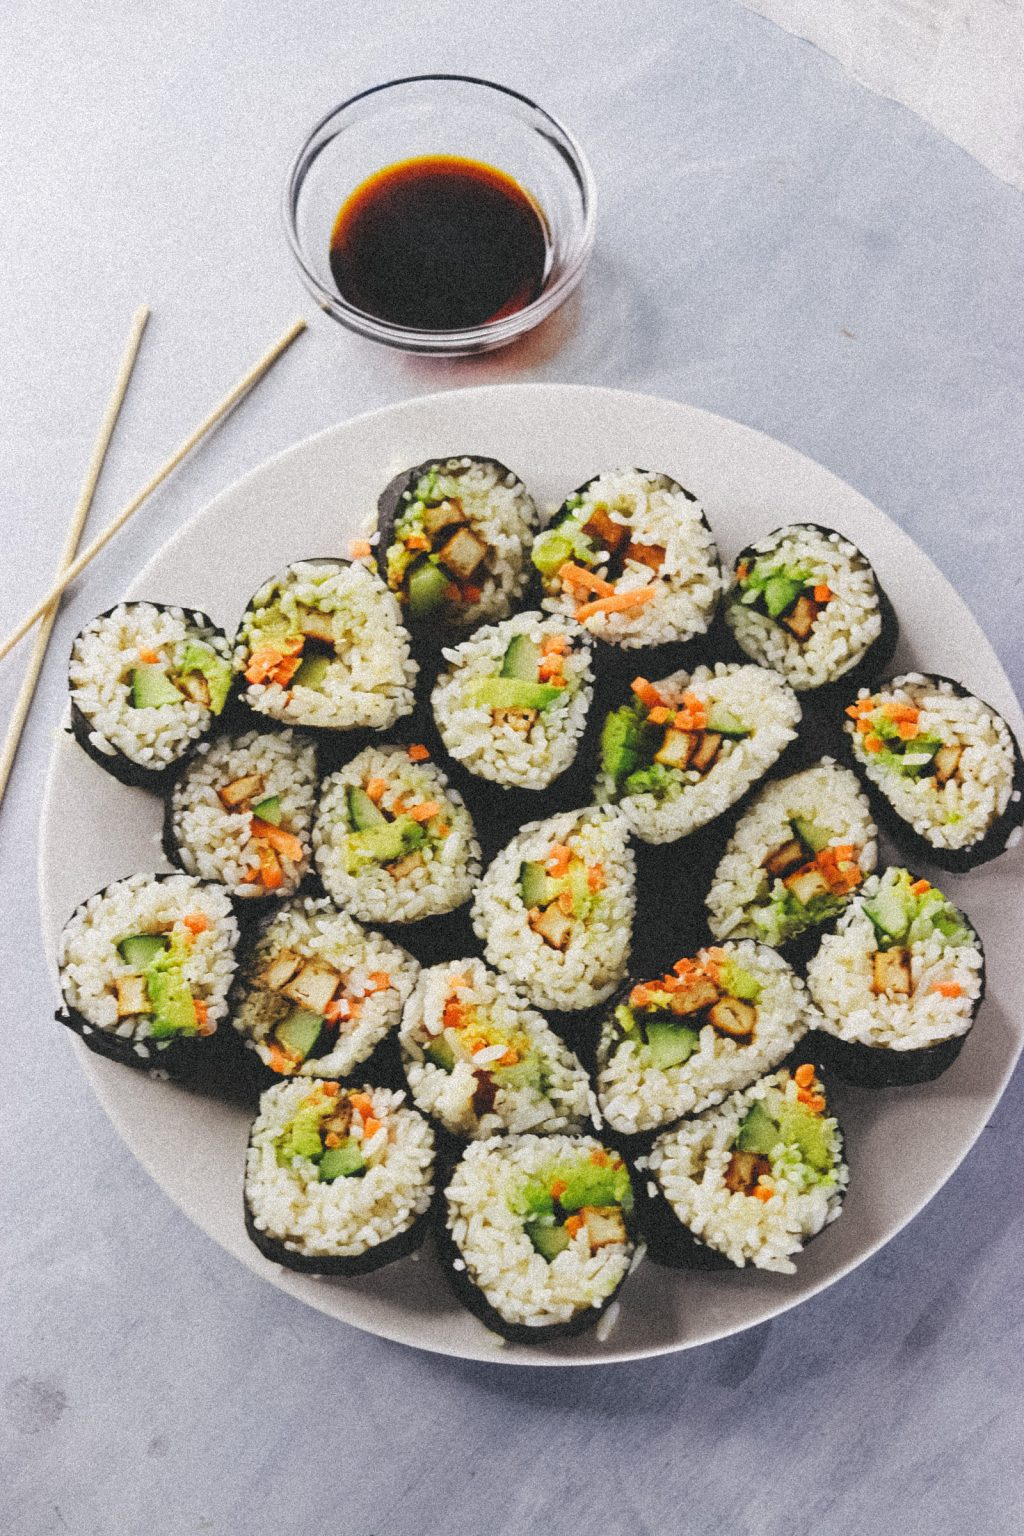 Vegan Tofu Sushi Recipe  4012 1024x1536 - Vegan Sushi Recipe - Super Quick, Easy And Delicious